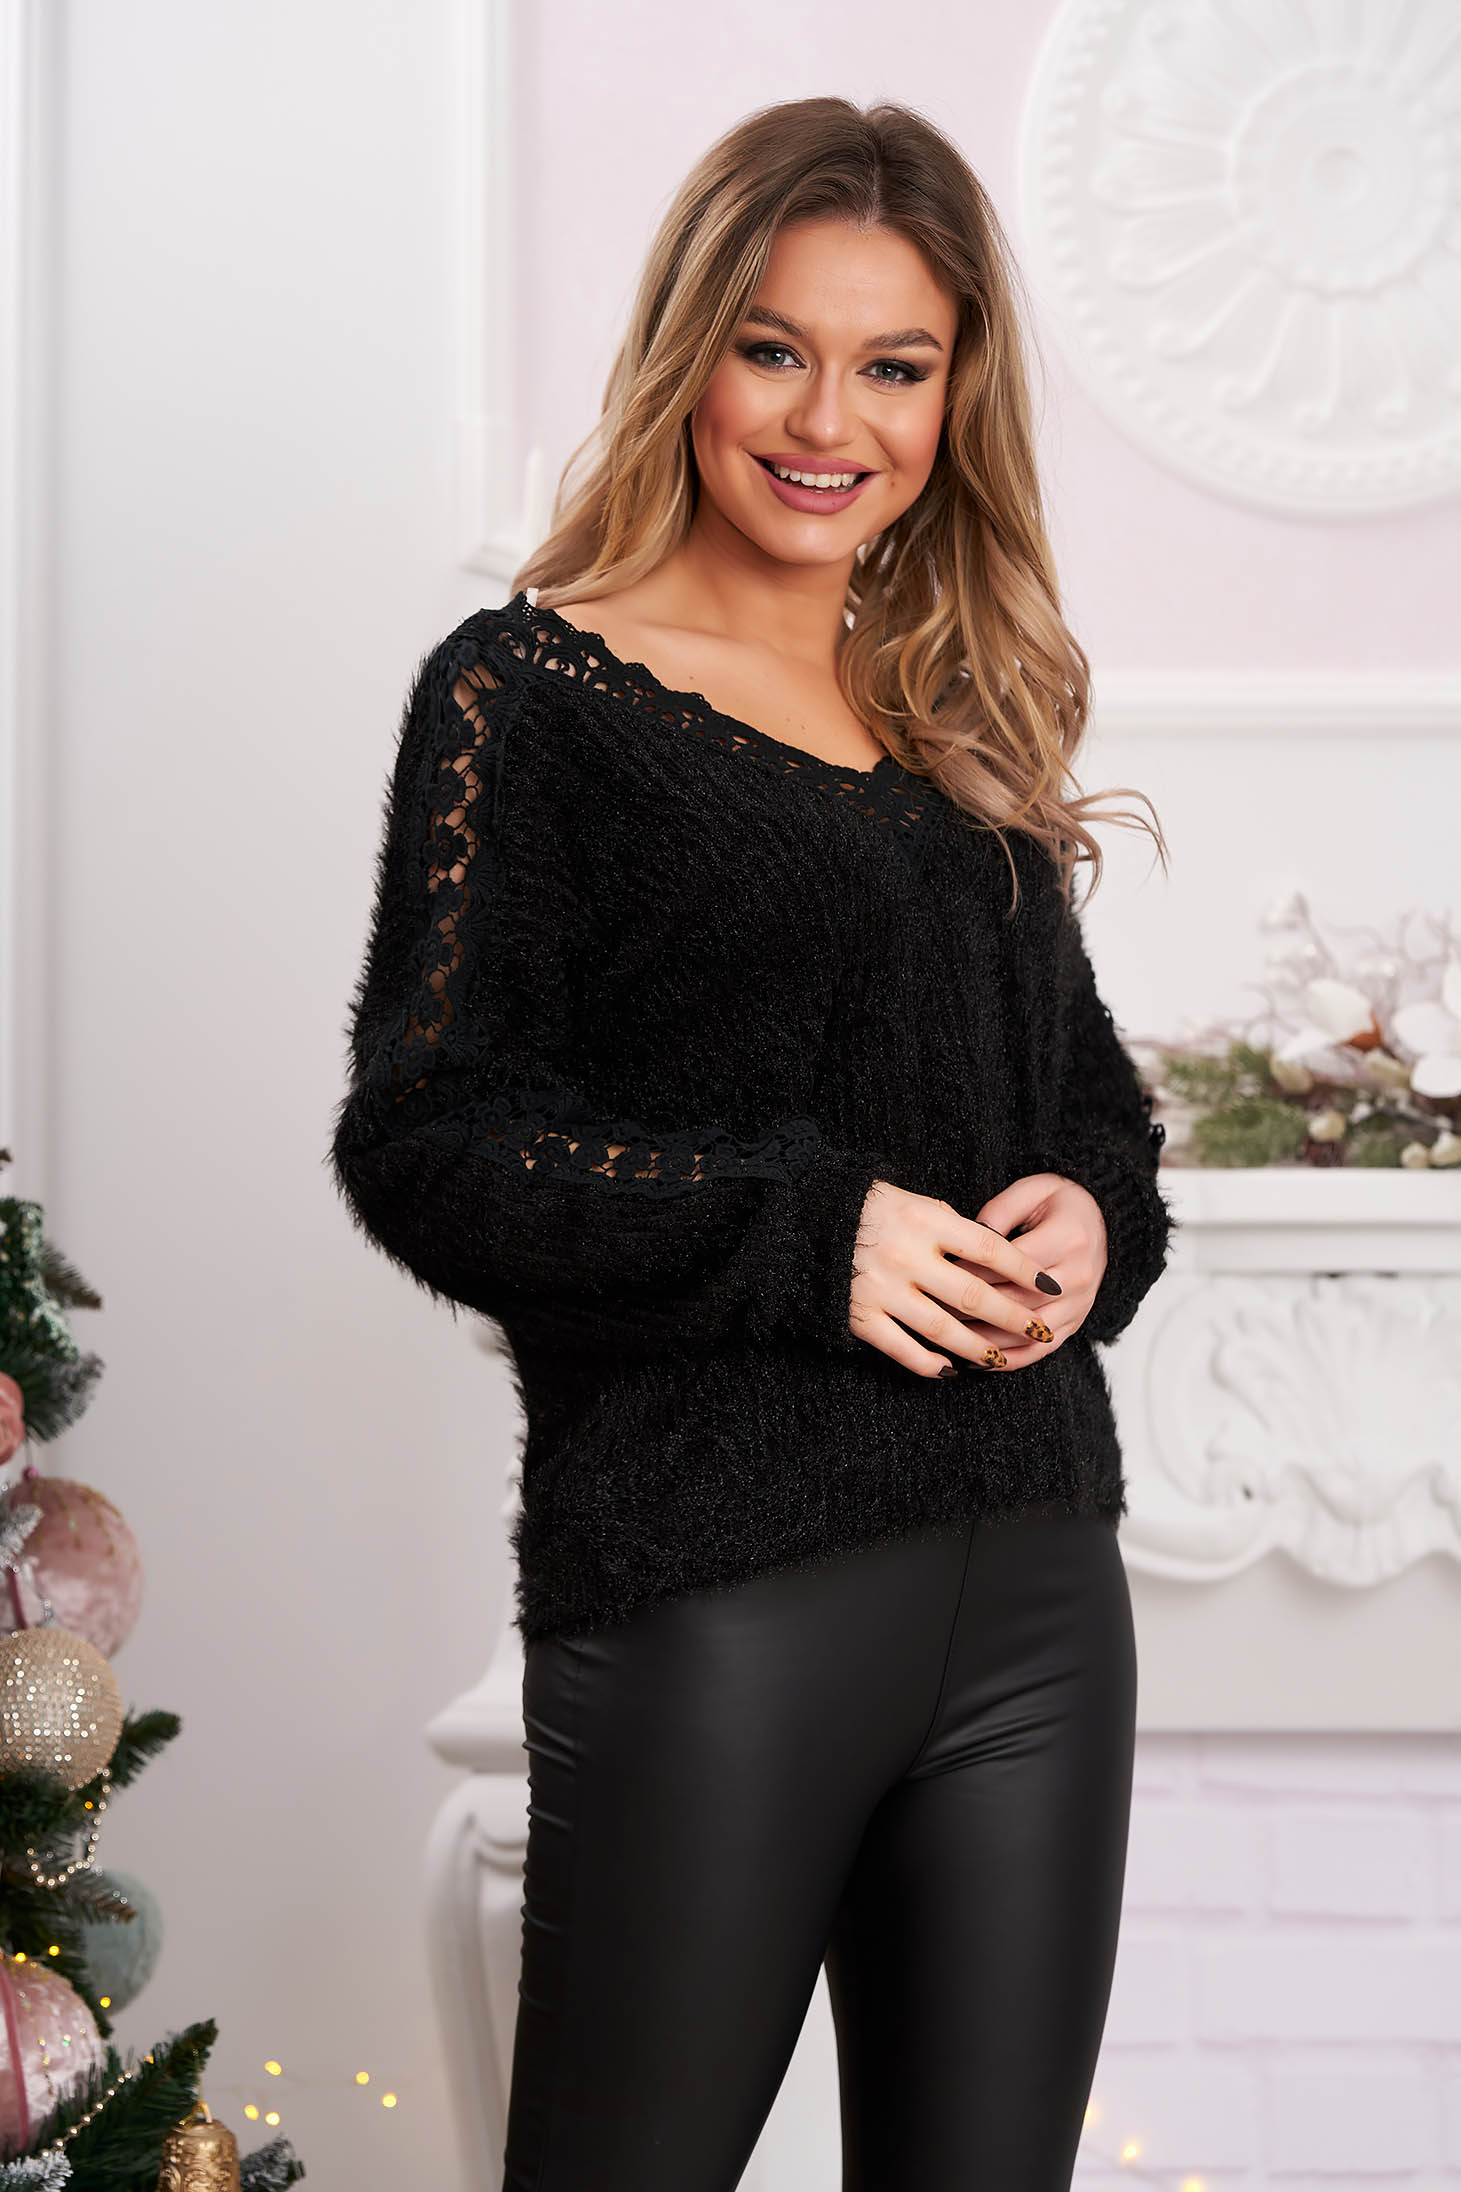 Black sweater casual knitted fabric with lace details flared